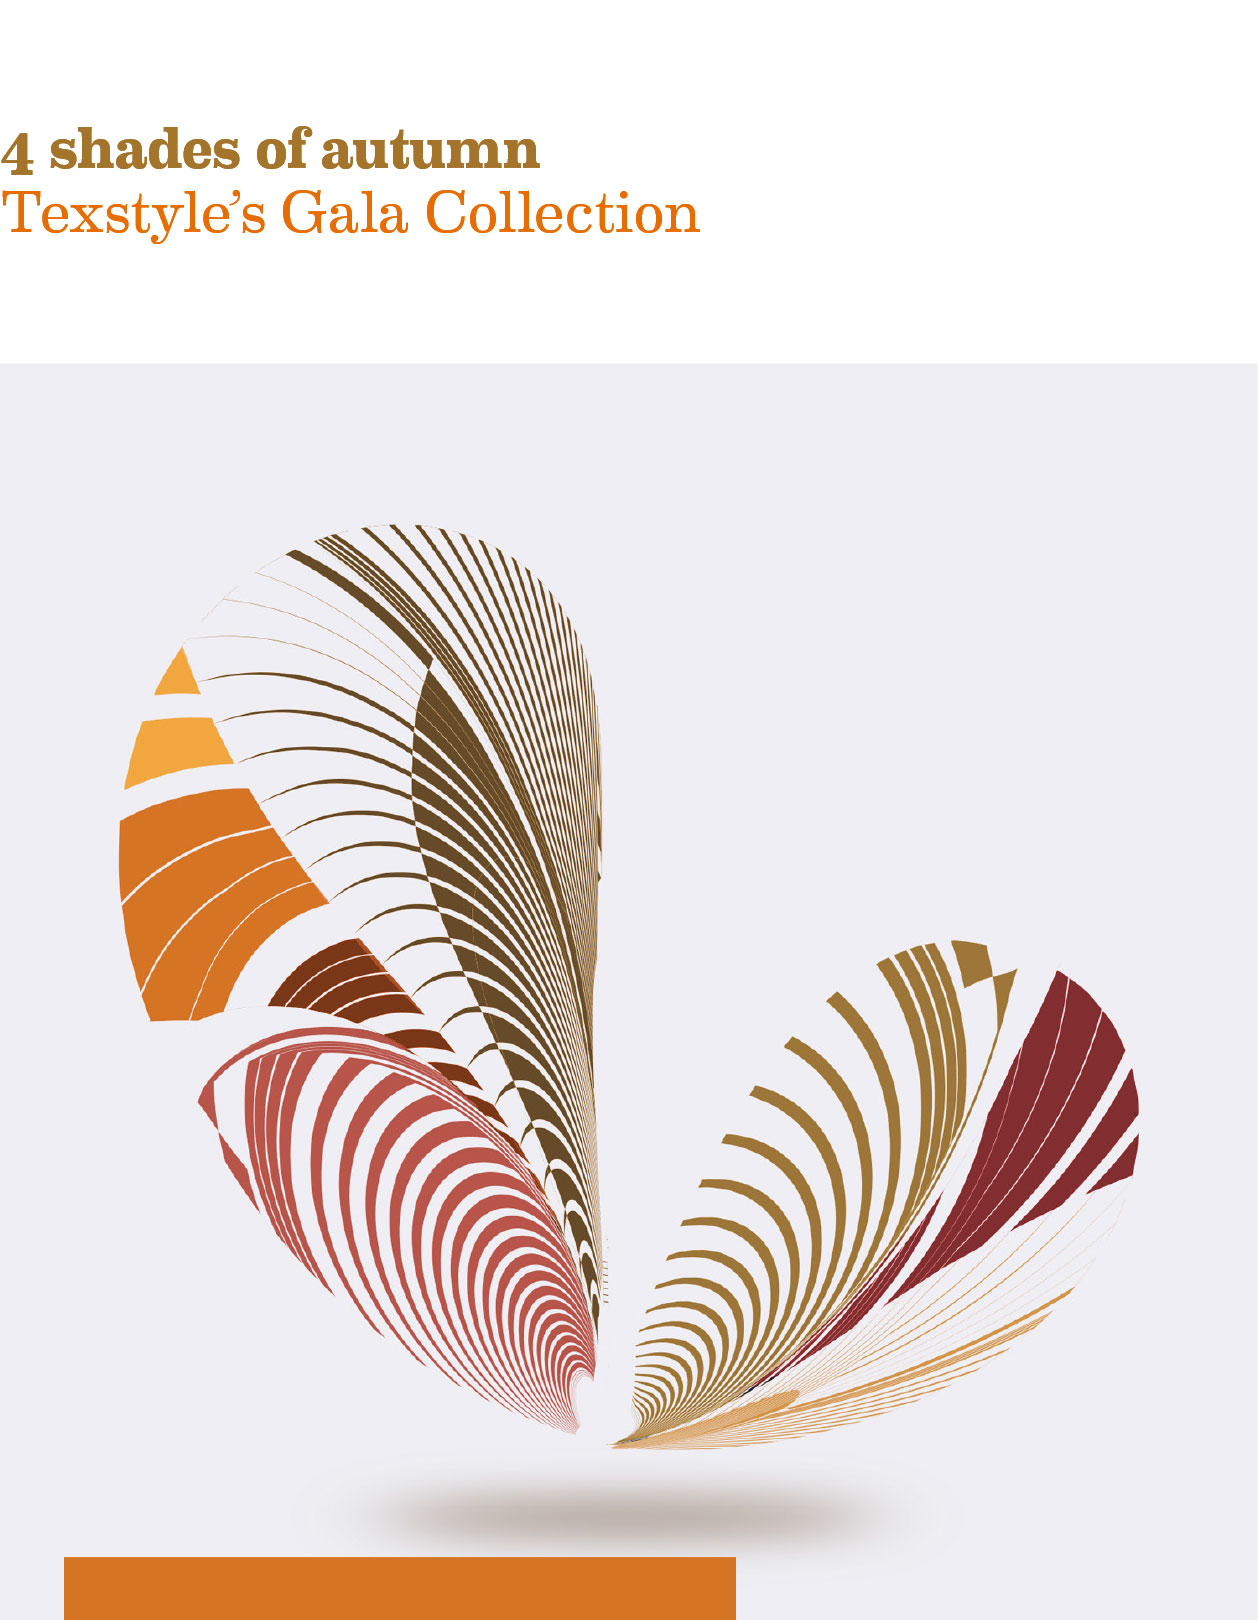 4 shades of autumn: Texstyle's Gala Collection